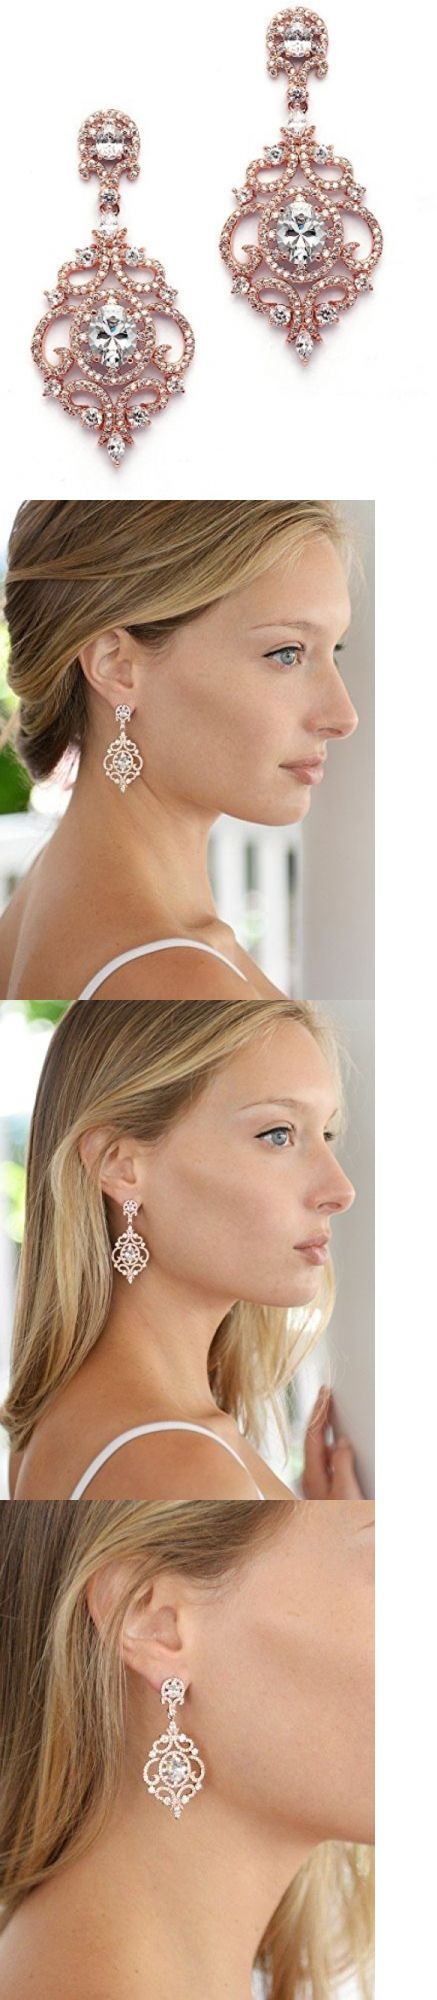 Bridal Jewelry 163552: Chandelier Earrings 14K Rose Gold Plated Cubic Zirconia Wedding Fashion Wedding -> BUY IT NOW ONLY: $41.95 on eBay!